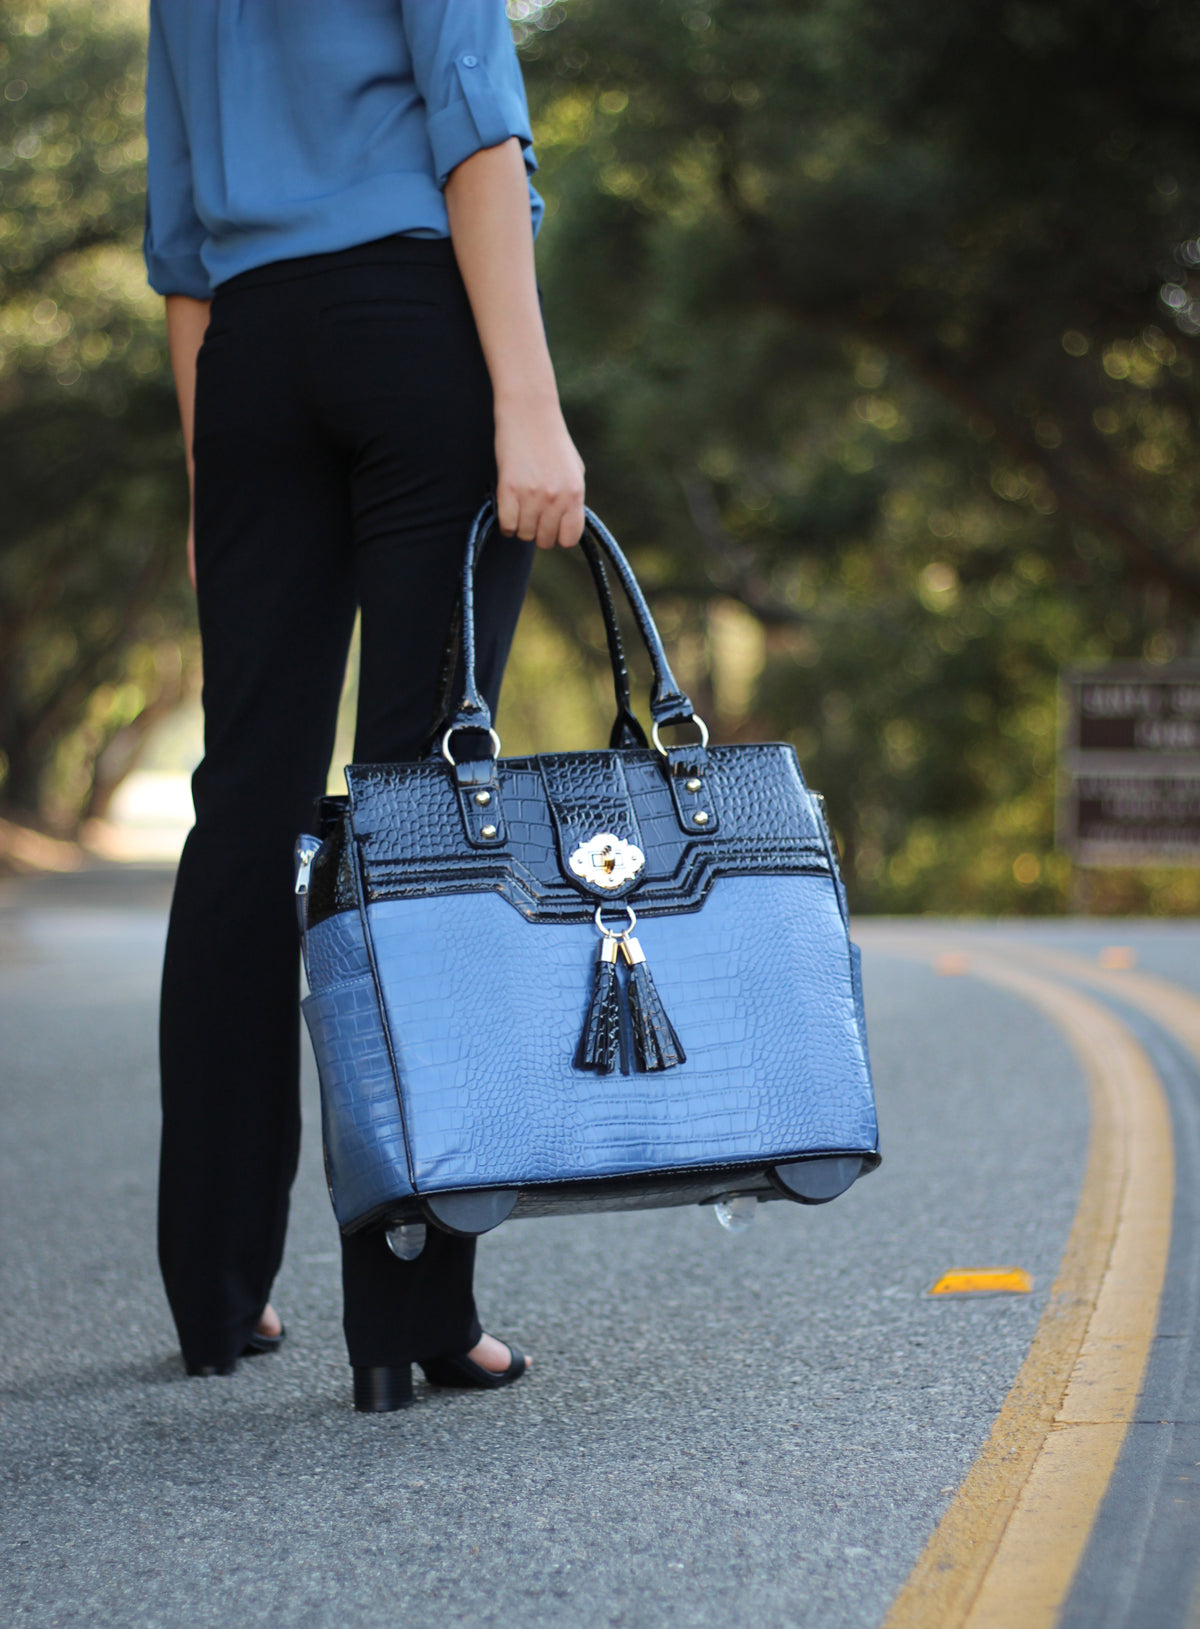 """THE OCEANSIDE"" Blue & Black Alligator Rolling 15.6"" Laptop Carryall Trolley Bag"